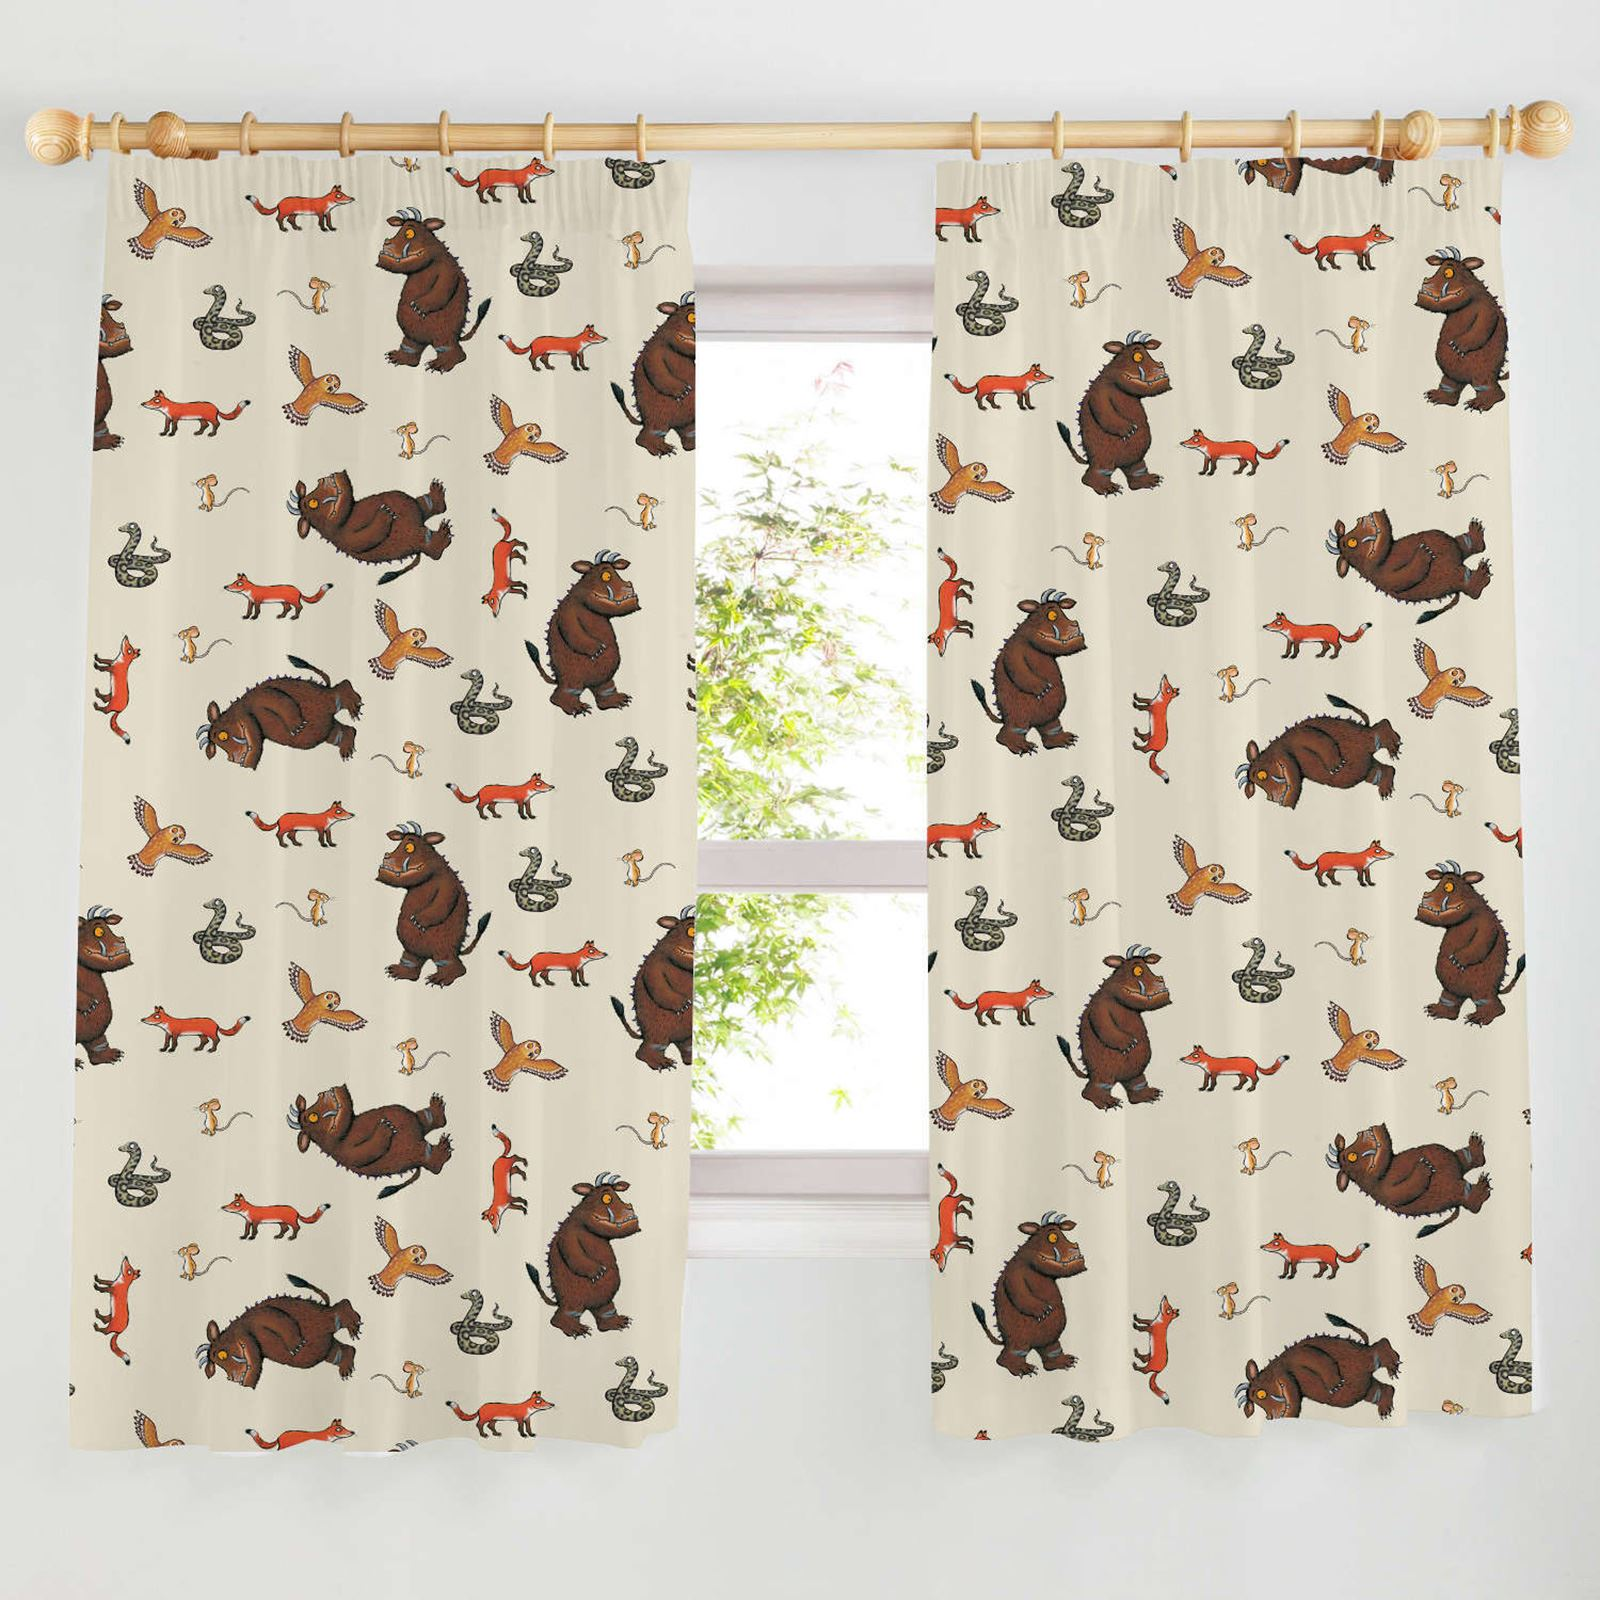 boys bedroom character curtains marvel star wars paw patrol more in 54 72 ebay. Black Bedroom Furniture Sets. Home Design Ideas